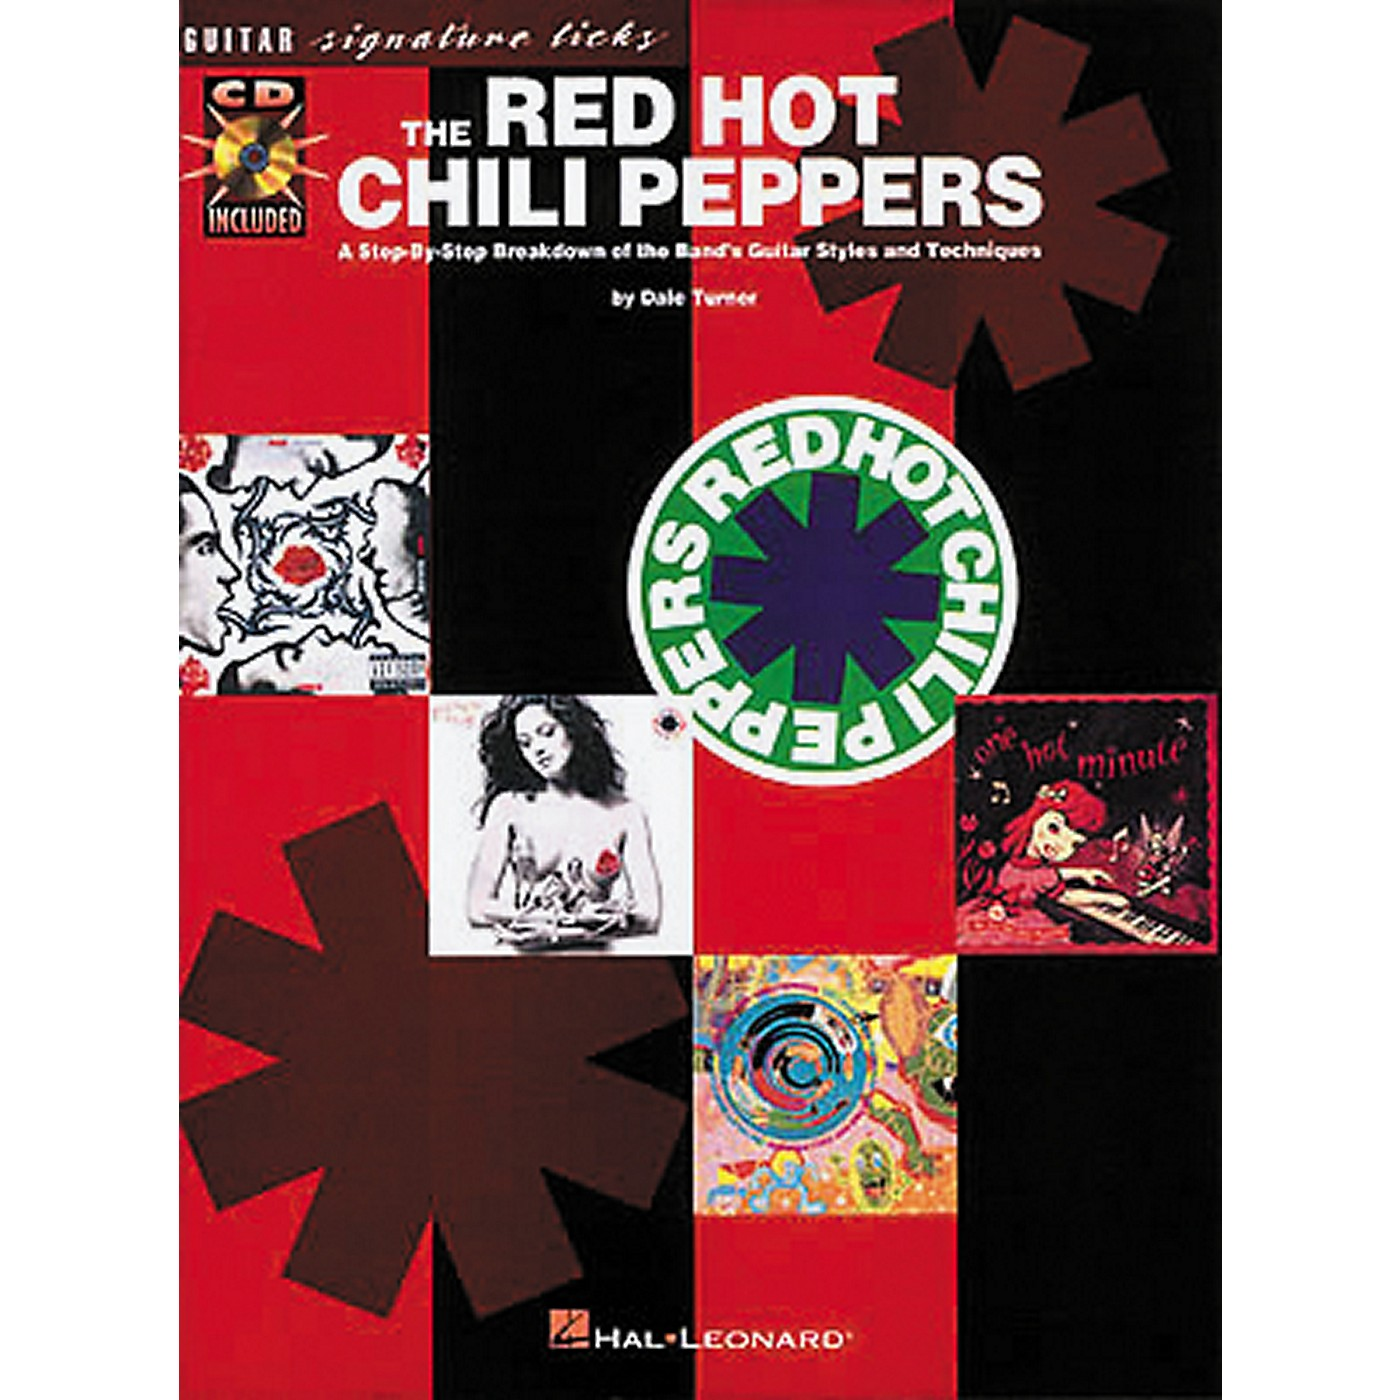 Hal Leonard The Red Hot Chili Peppers Guitar Signature Licks Book with CD thumbnail